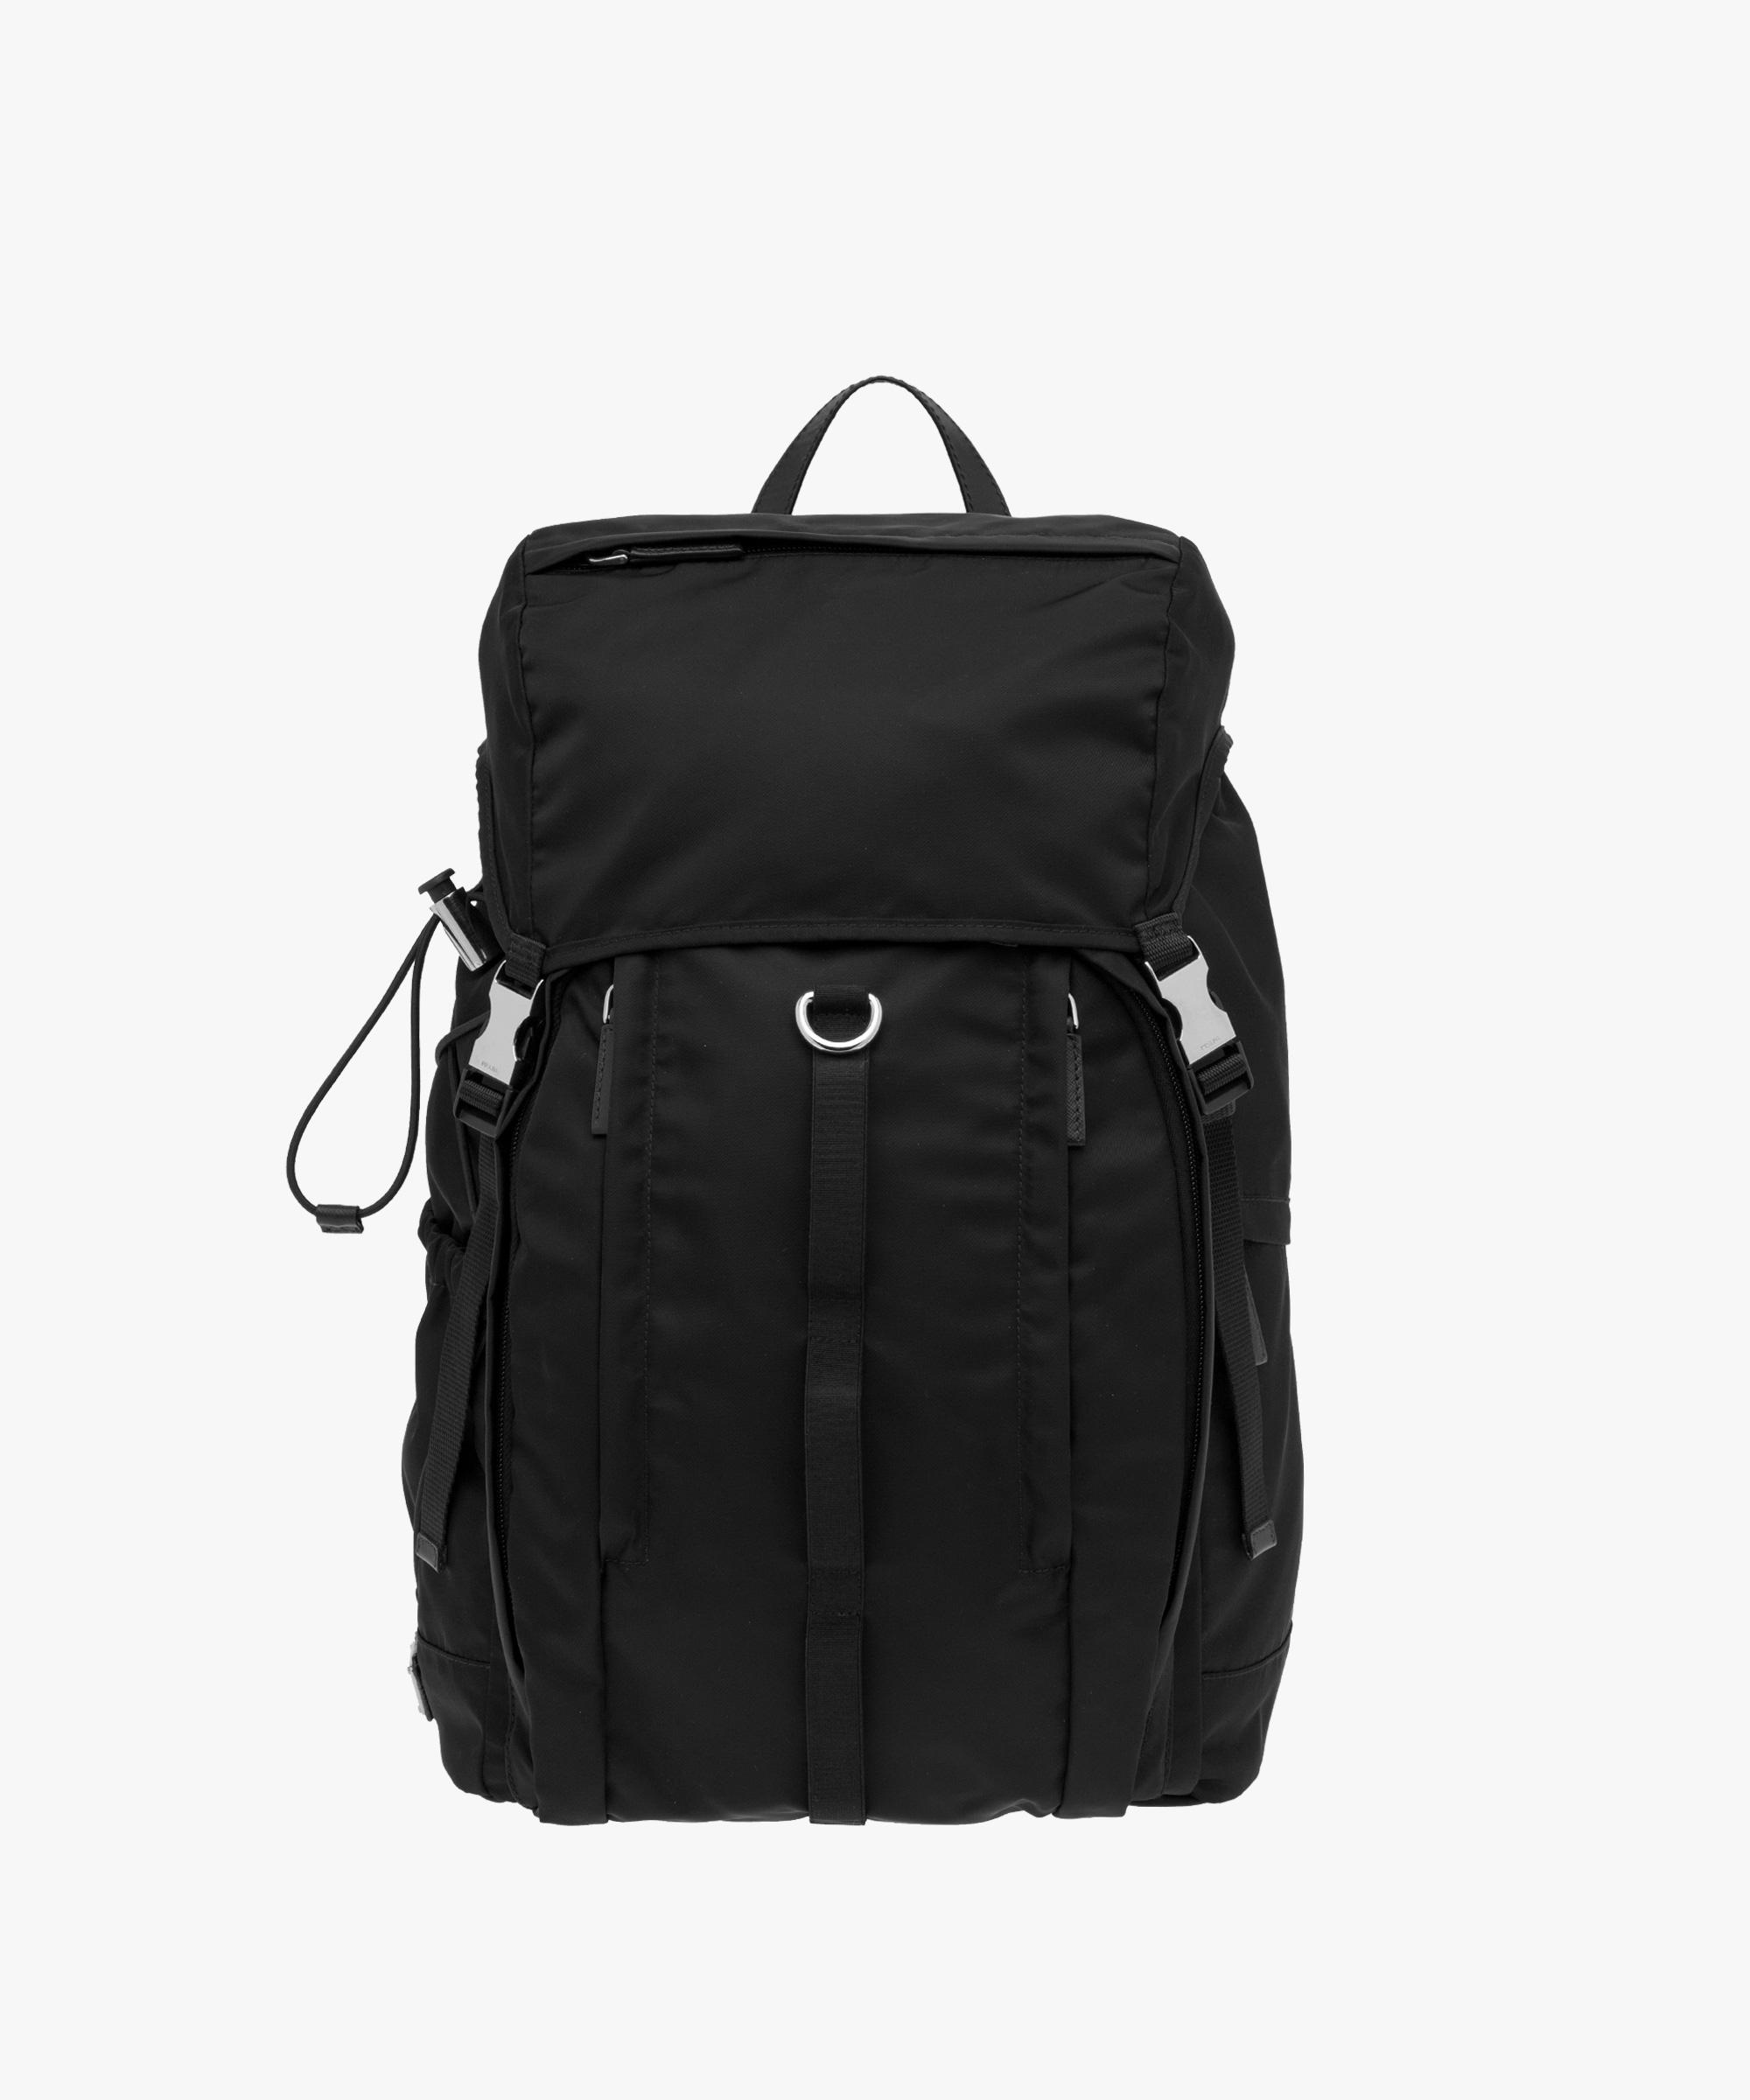 7d79a91d887e ... authentic lyst prada fabric backpack in black for men d952f 9c9ed